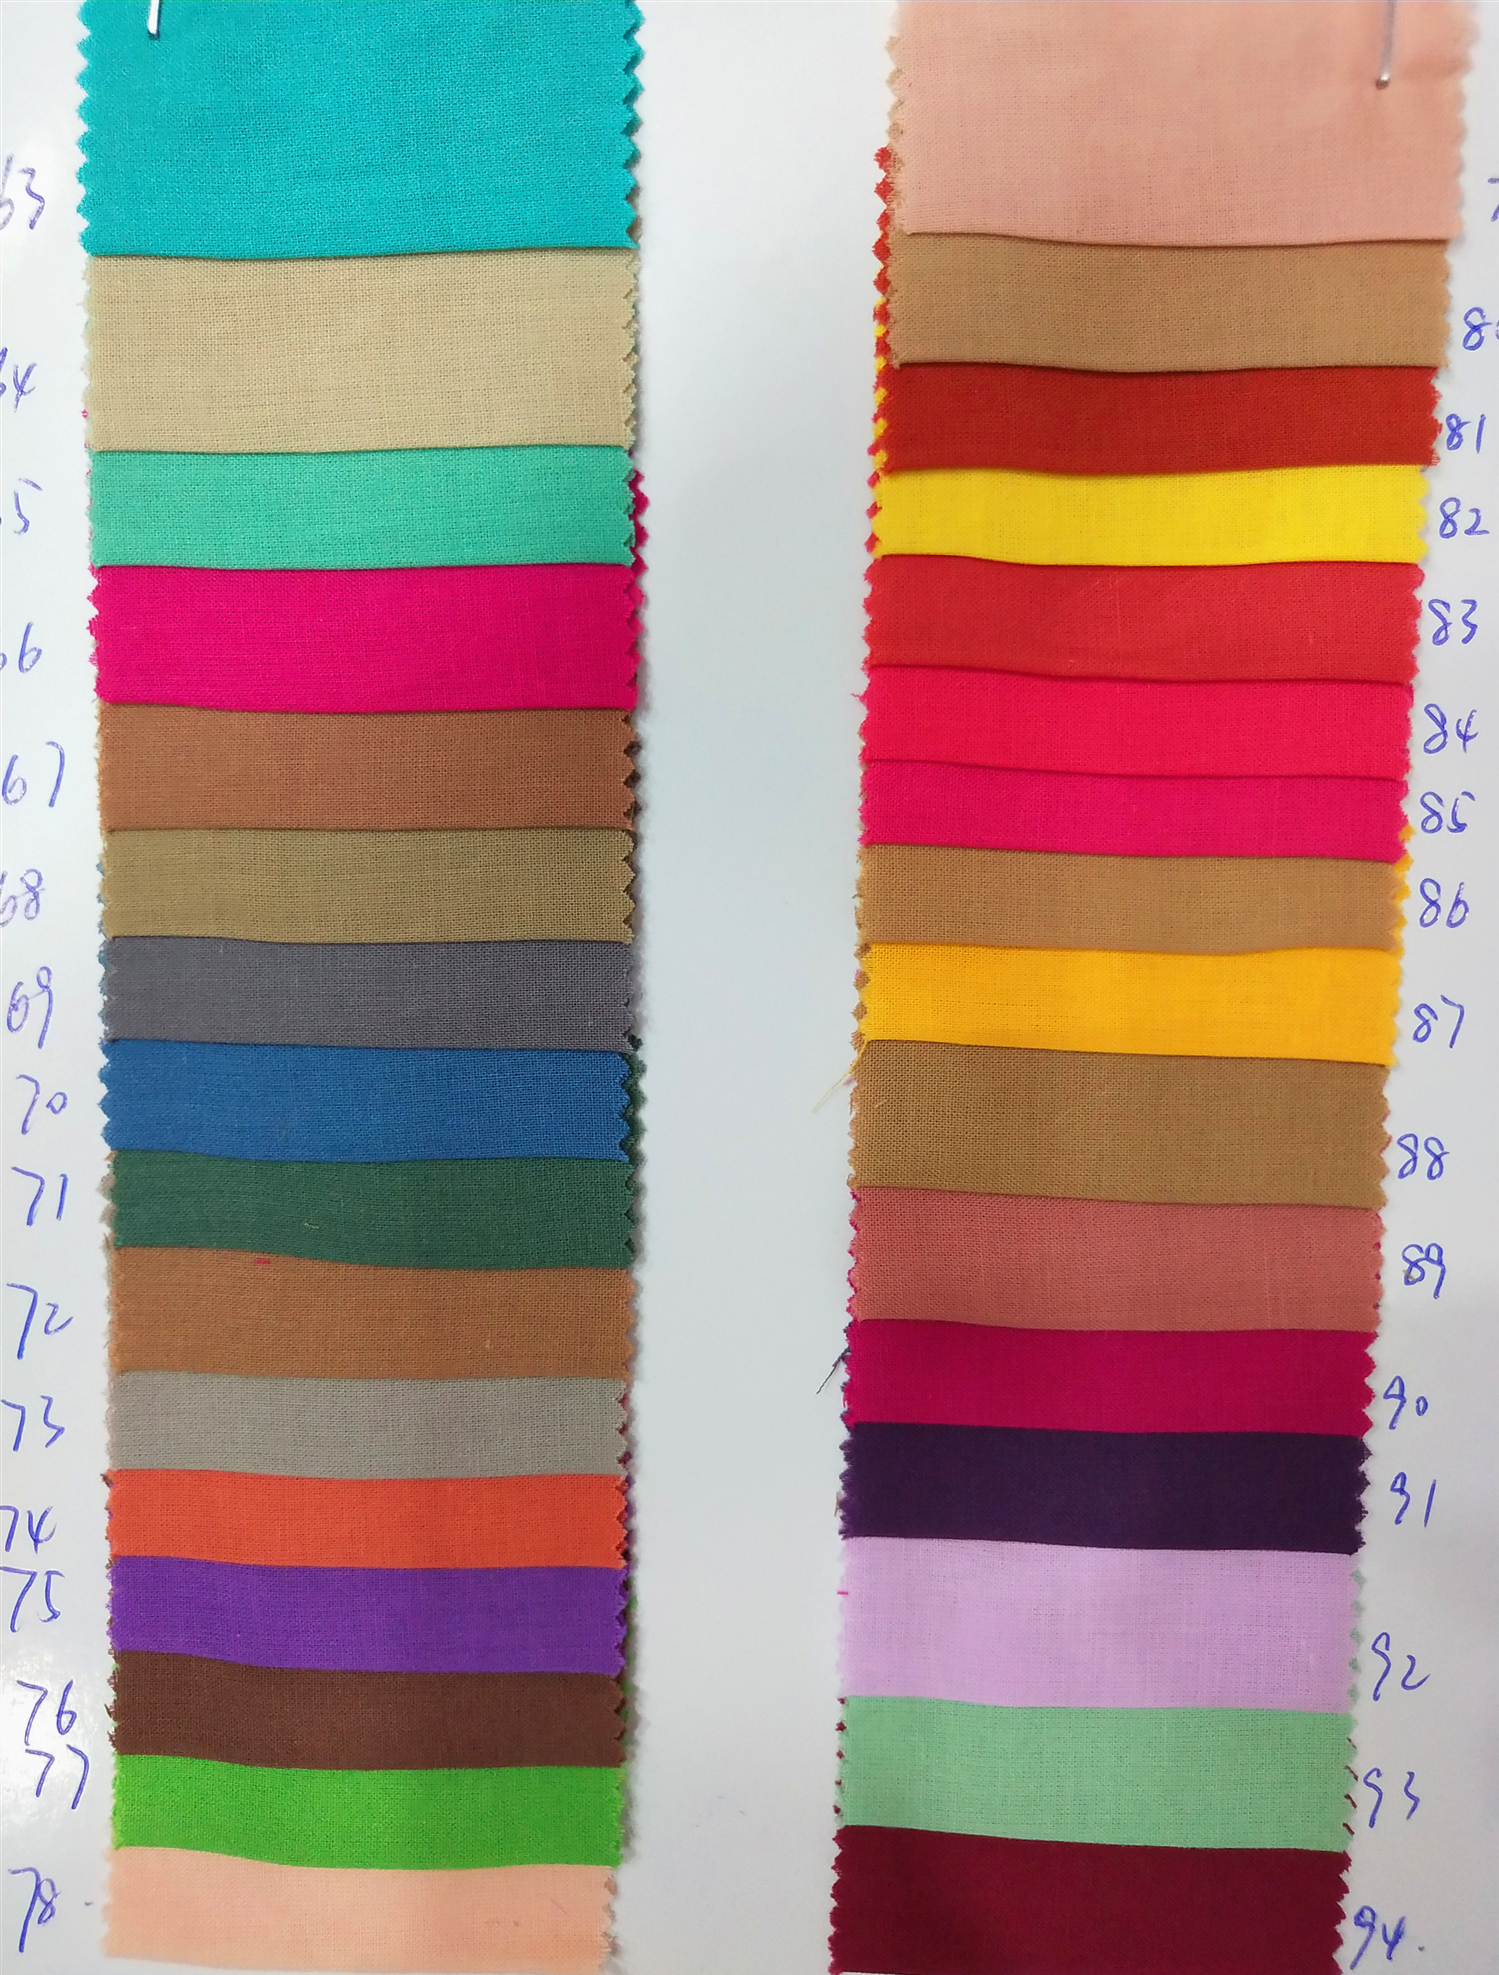 100% cotton yard dyed plain voile fabric